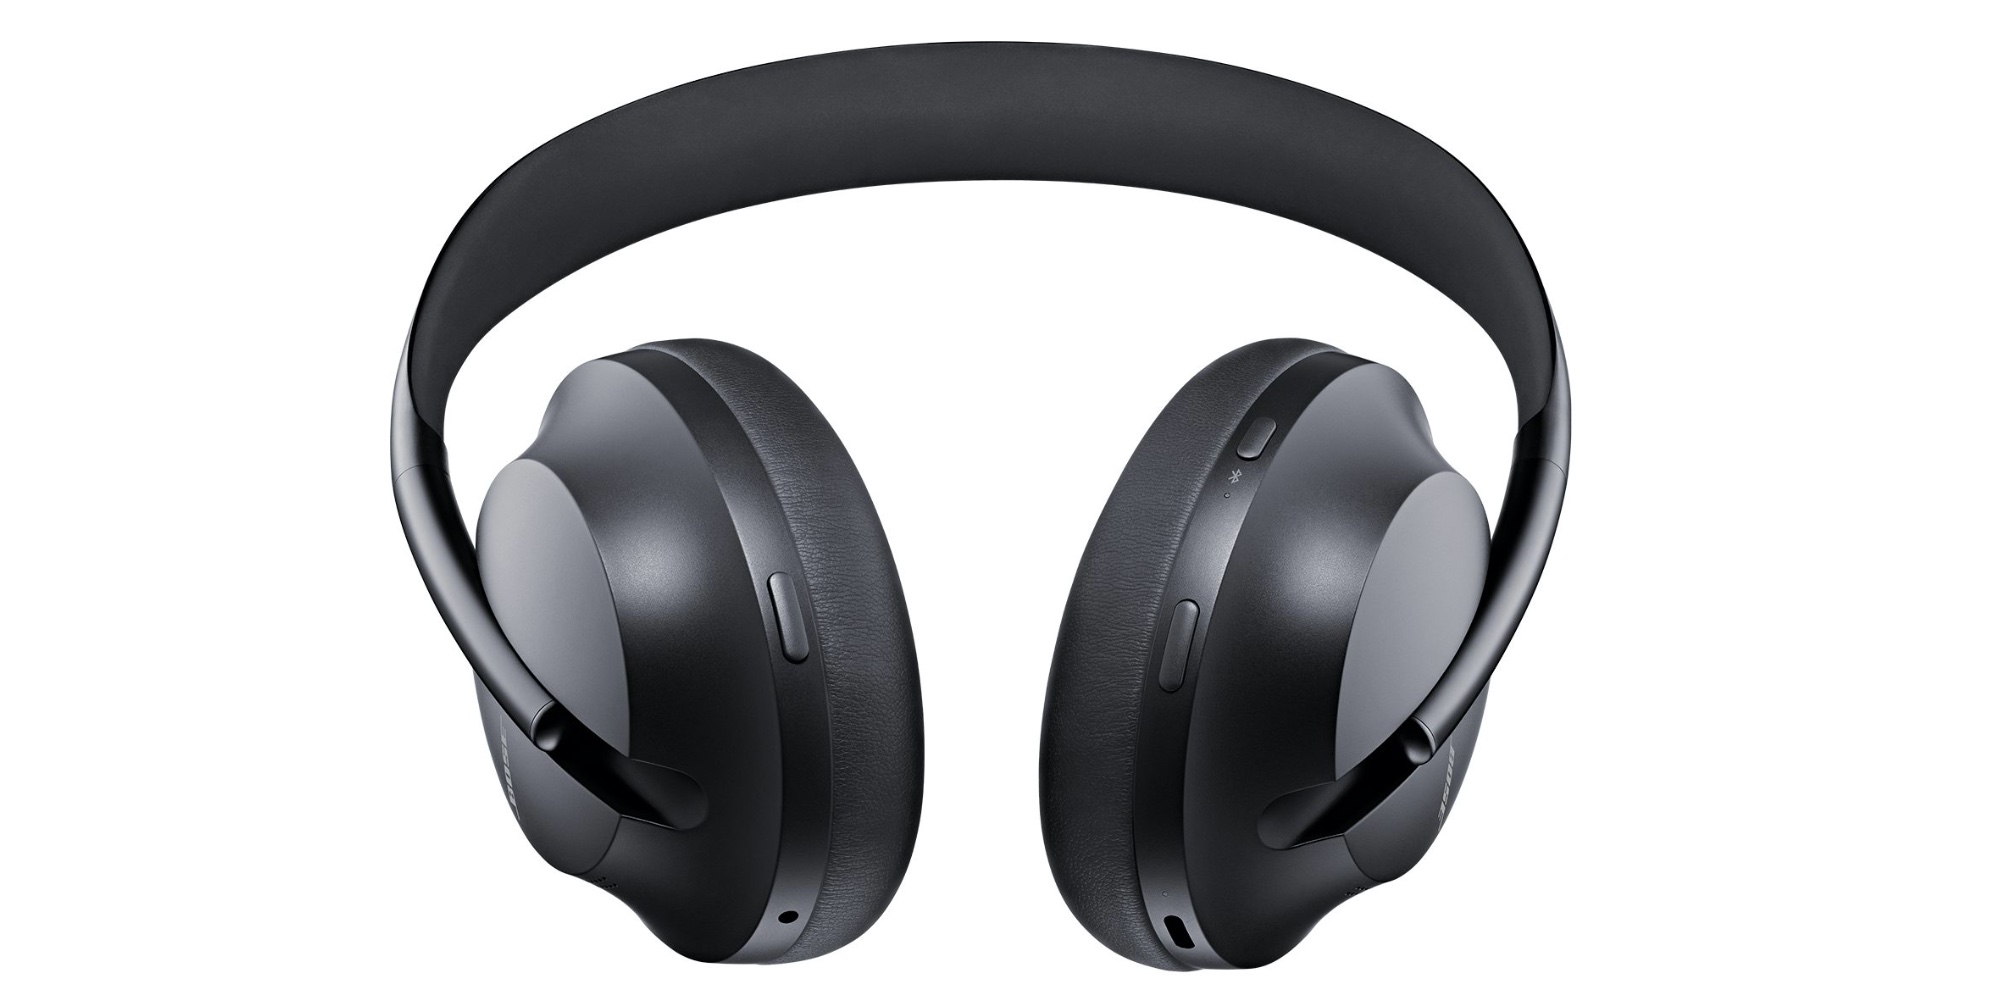 Bose ANC Headphones 700 fall to new all-time low at $280 (Renewed, Orig. $399) - 9to5Toys